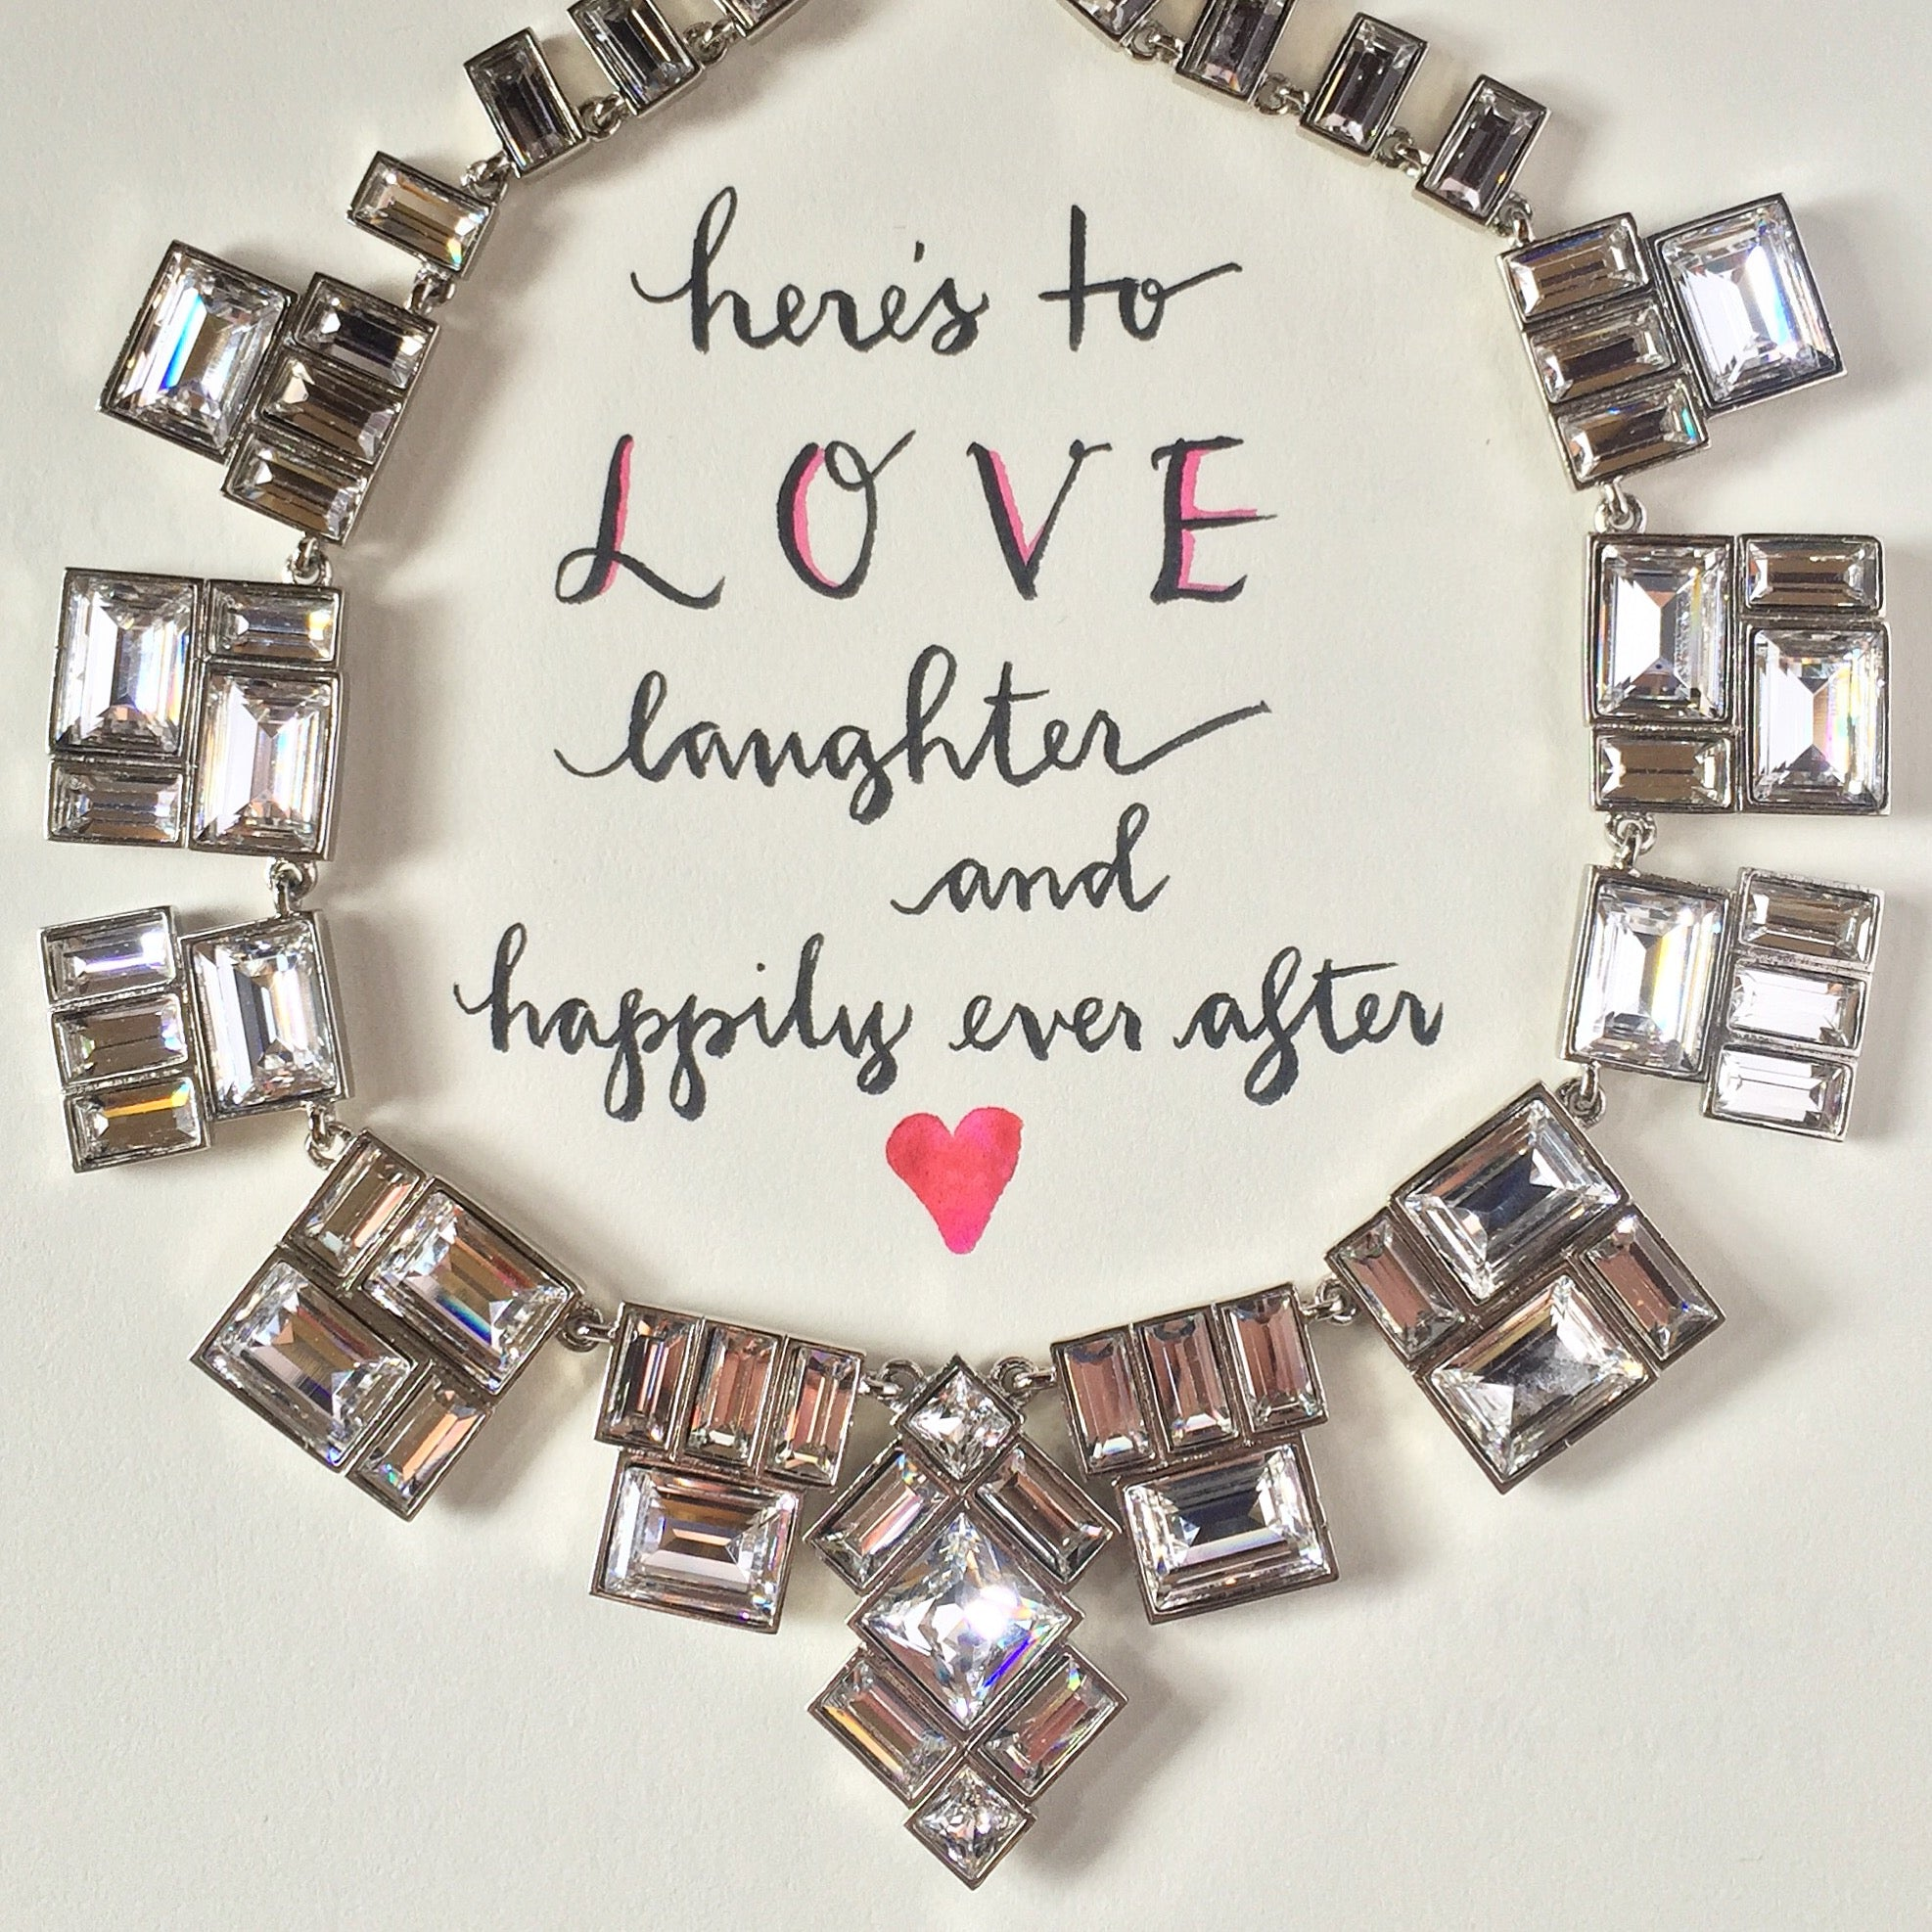 #Sequin Sayings - Here's to LOVE...